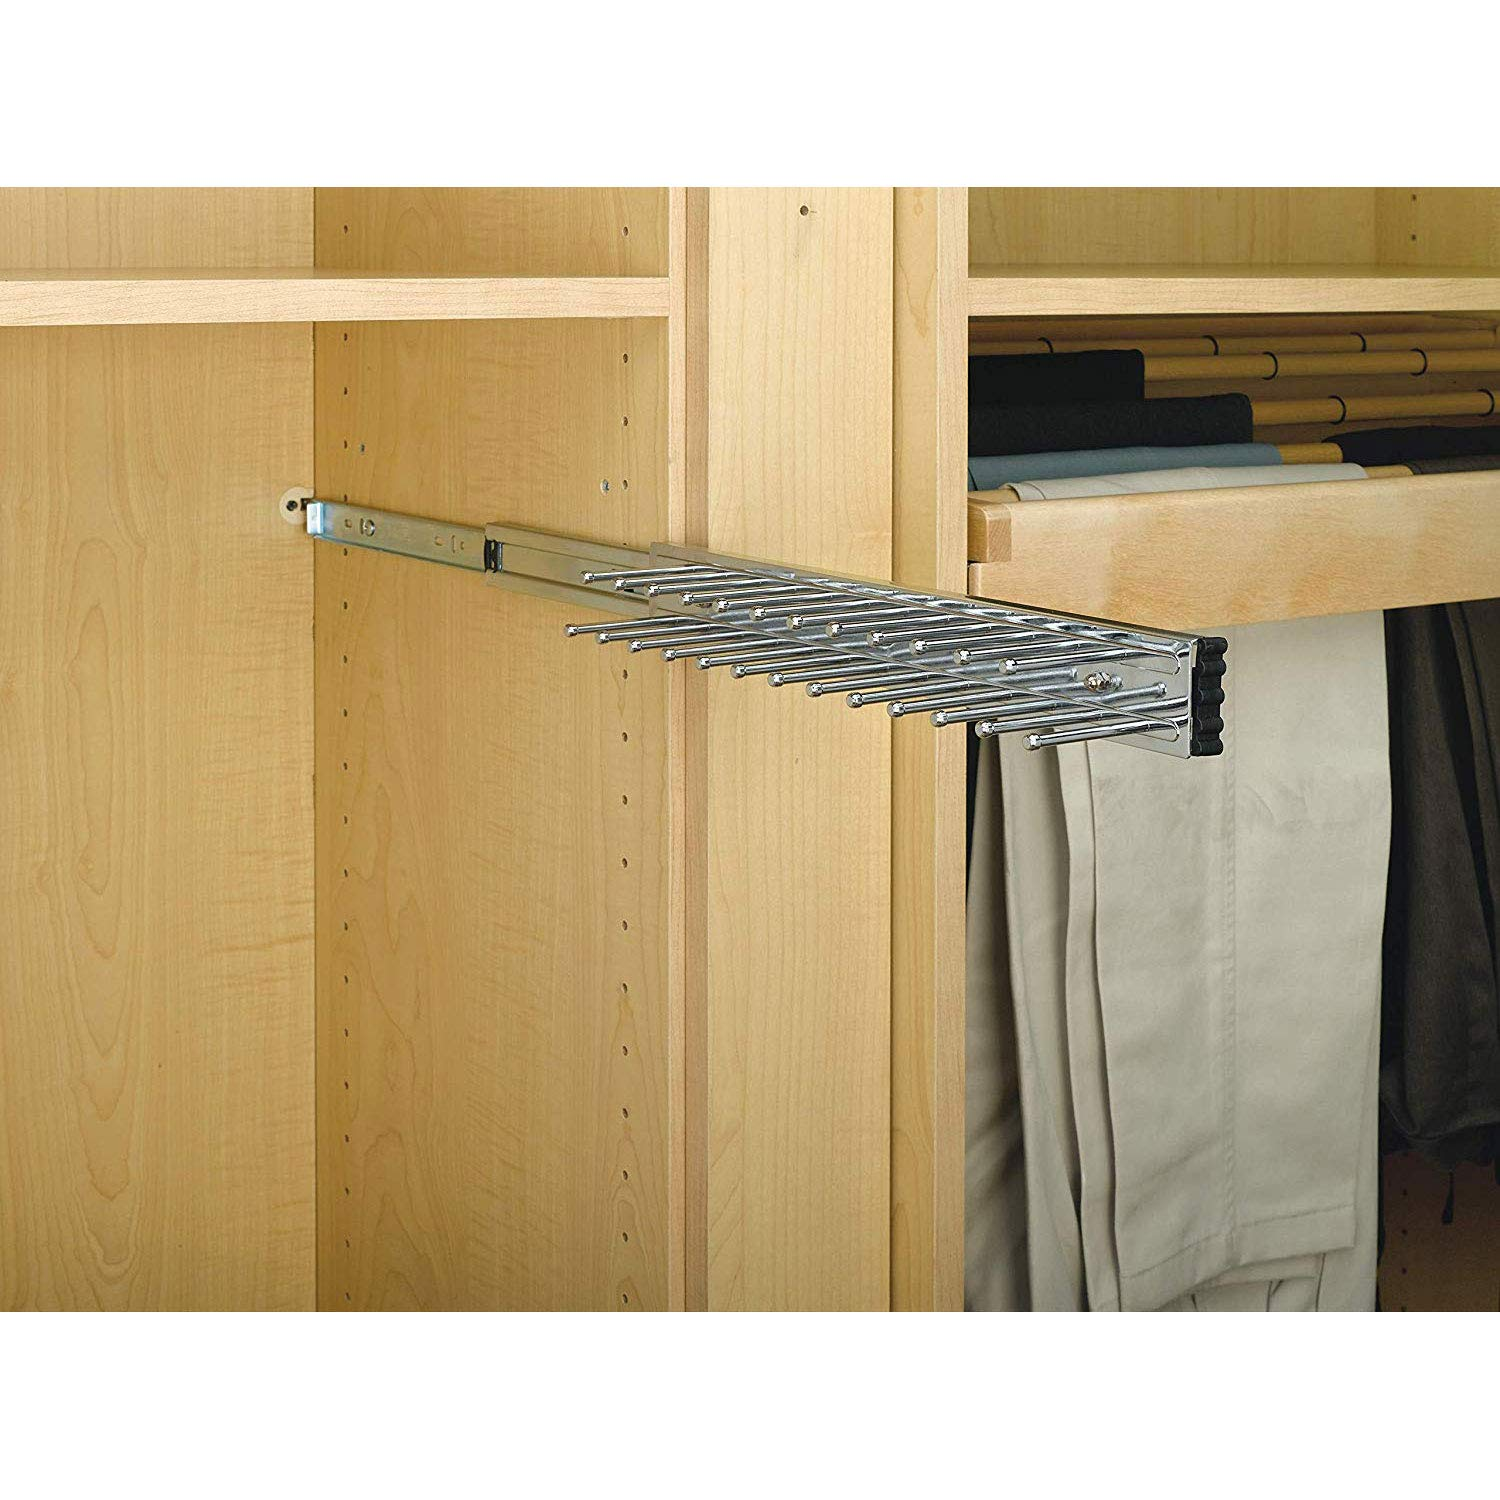 "Amazon.com: Rev-A-Shelf - Corbatero de 14"" de montaje ..."